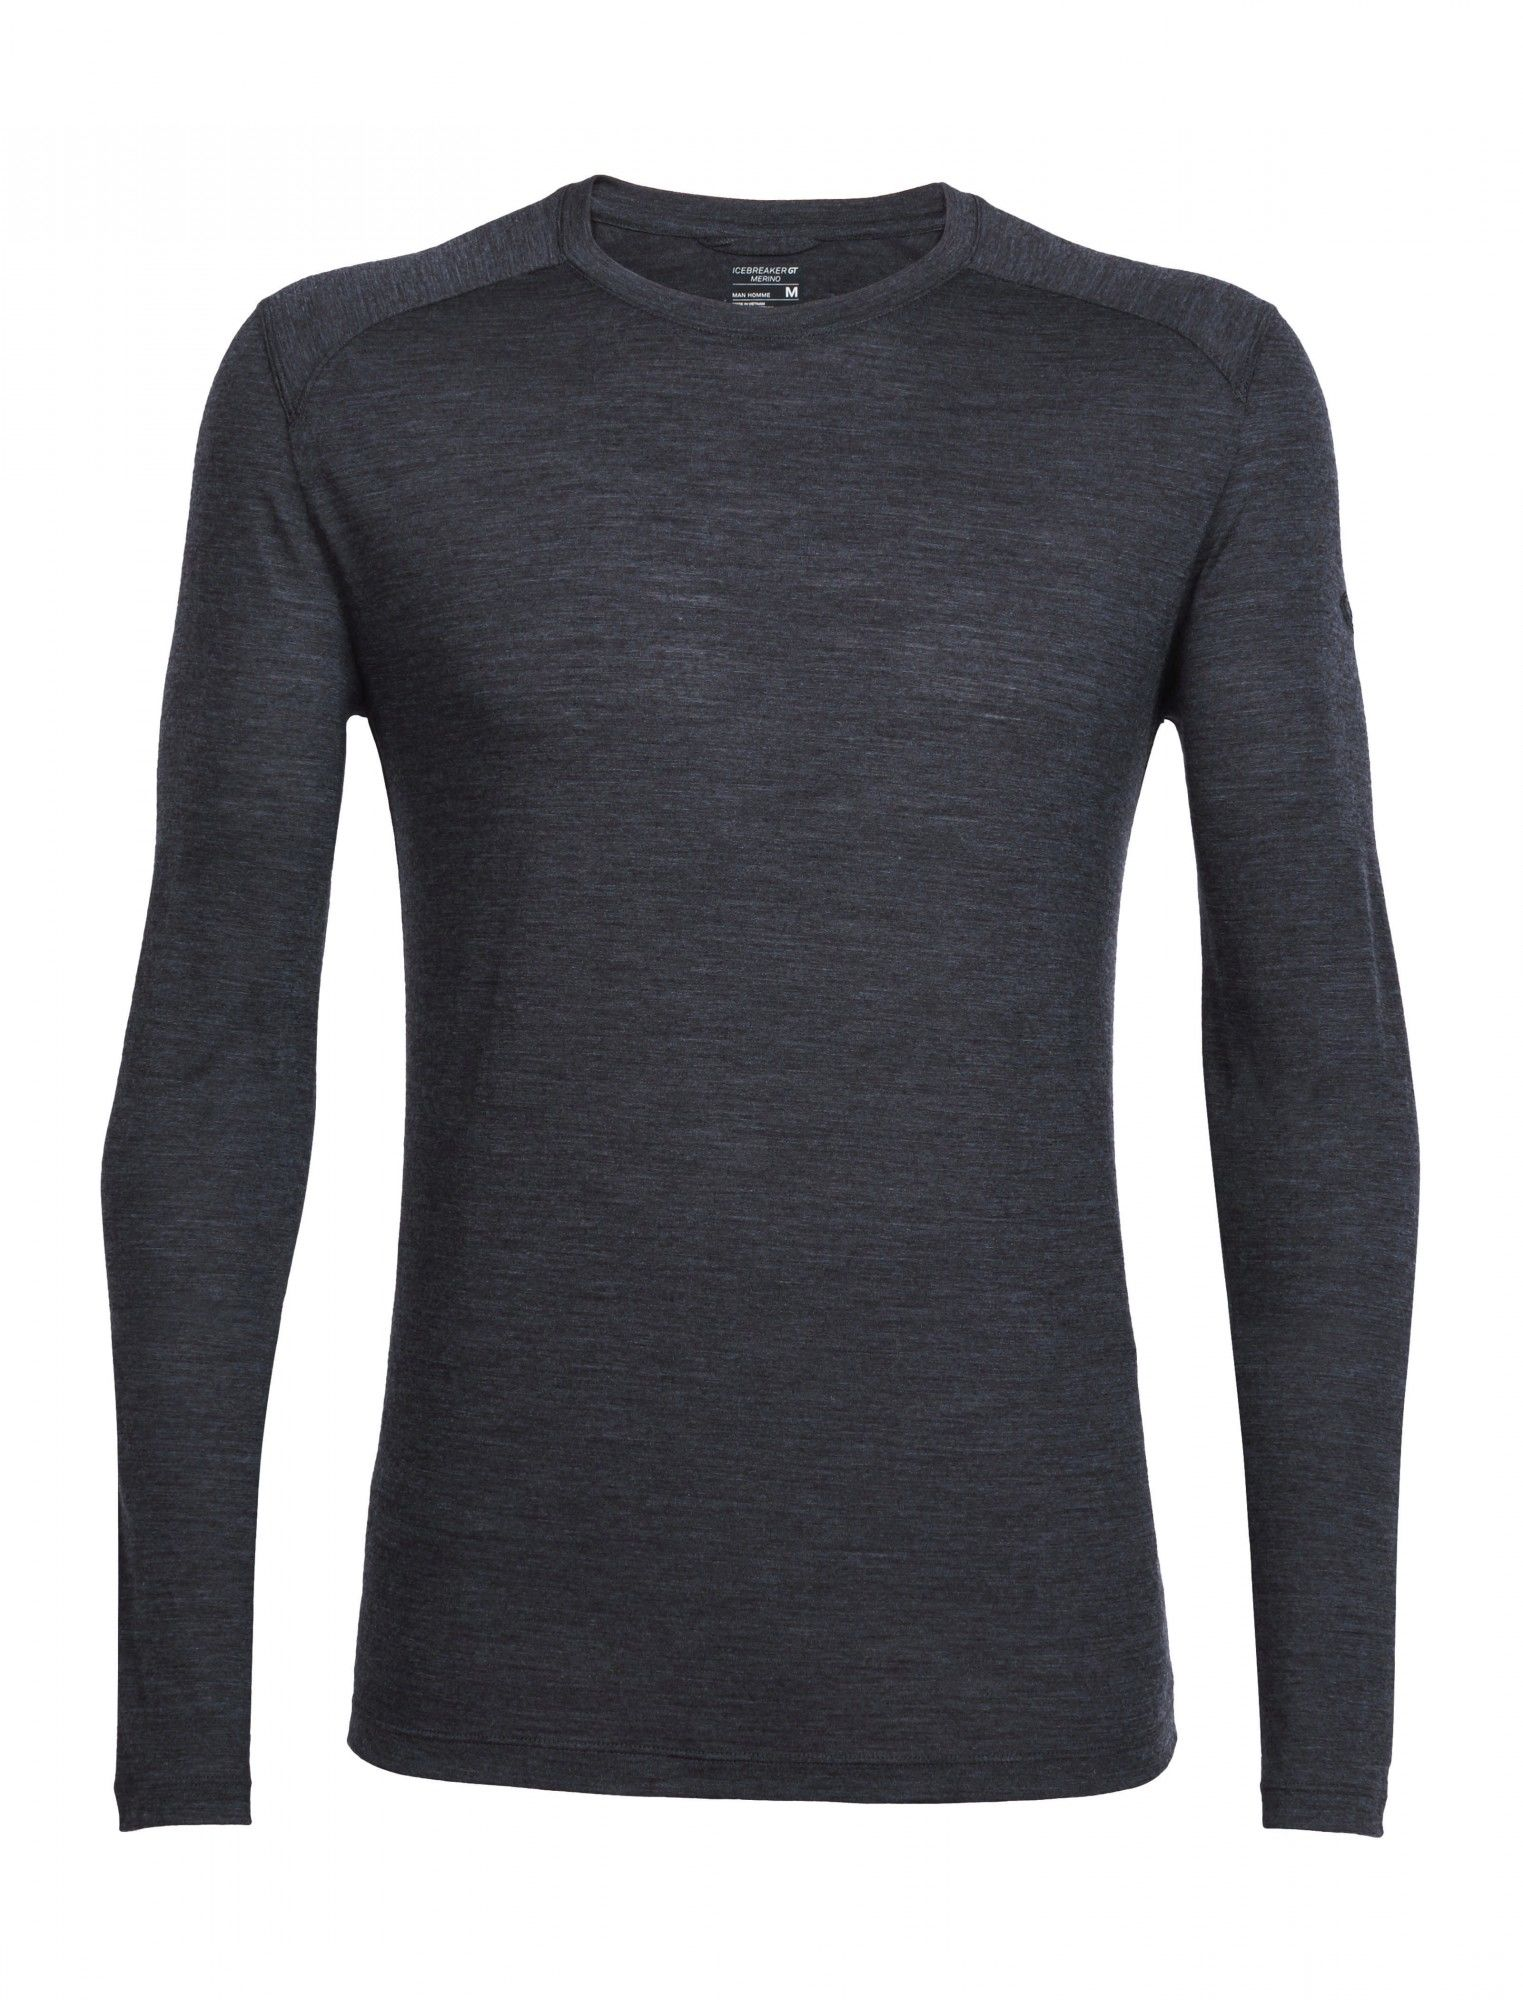 Icebreaker Sphere Long-Sleeve Crewe Schwarz, Male Merino XL -Farbe Black HTHR, X